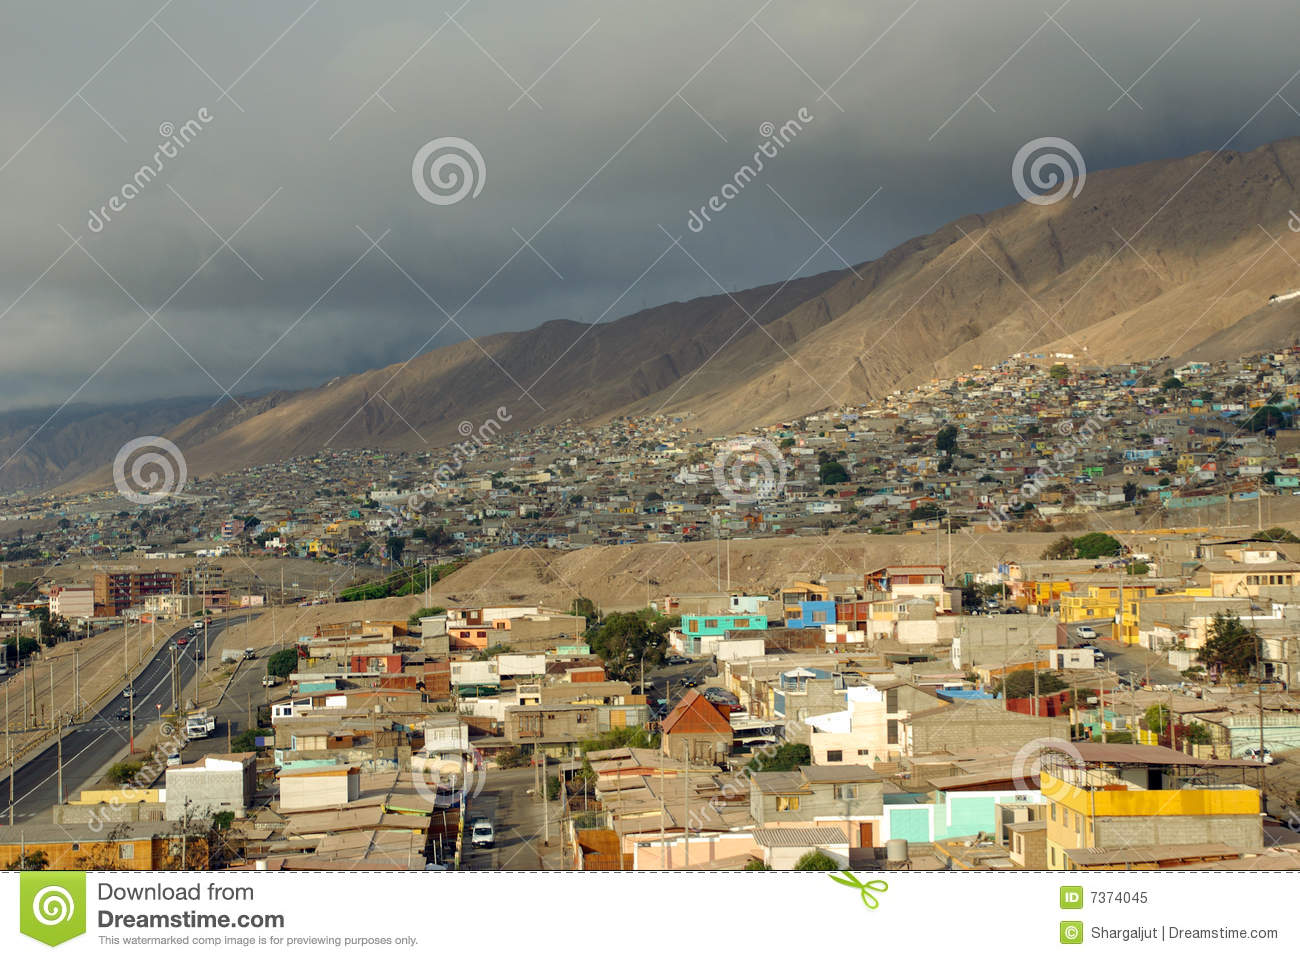 Antofagasta Chile  city photos gallery : Antofagasta, Chile Royalty Free Stock Photo Image: 7374045